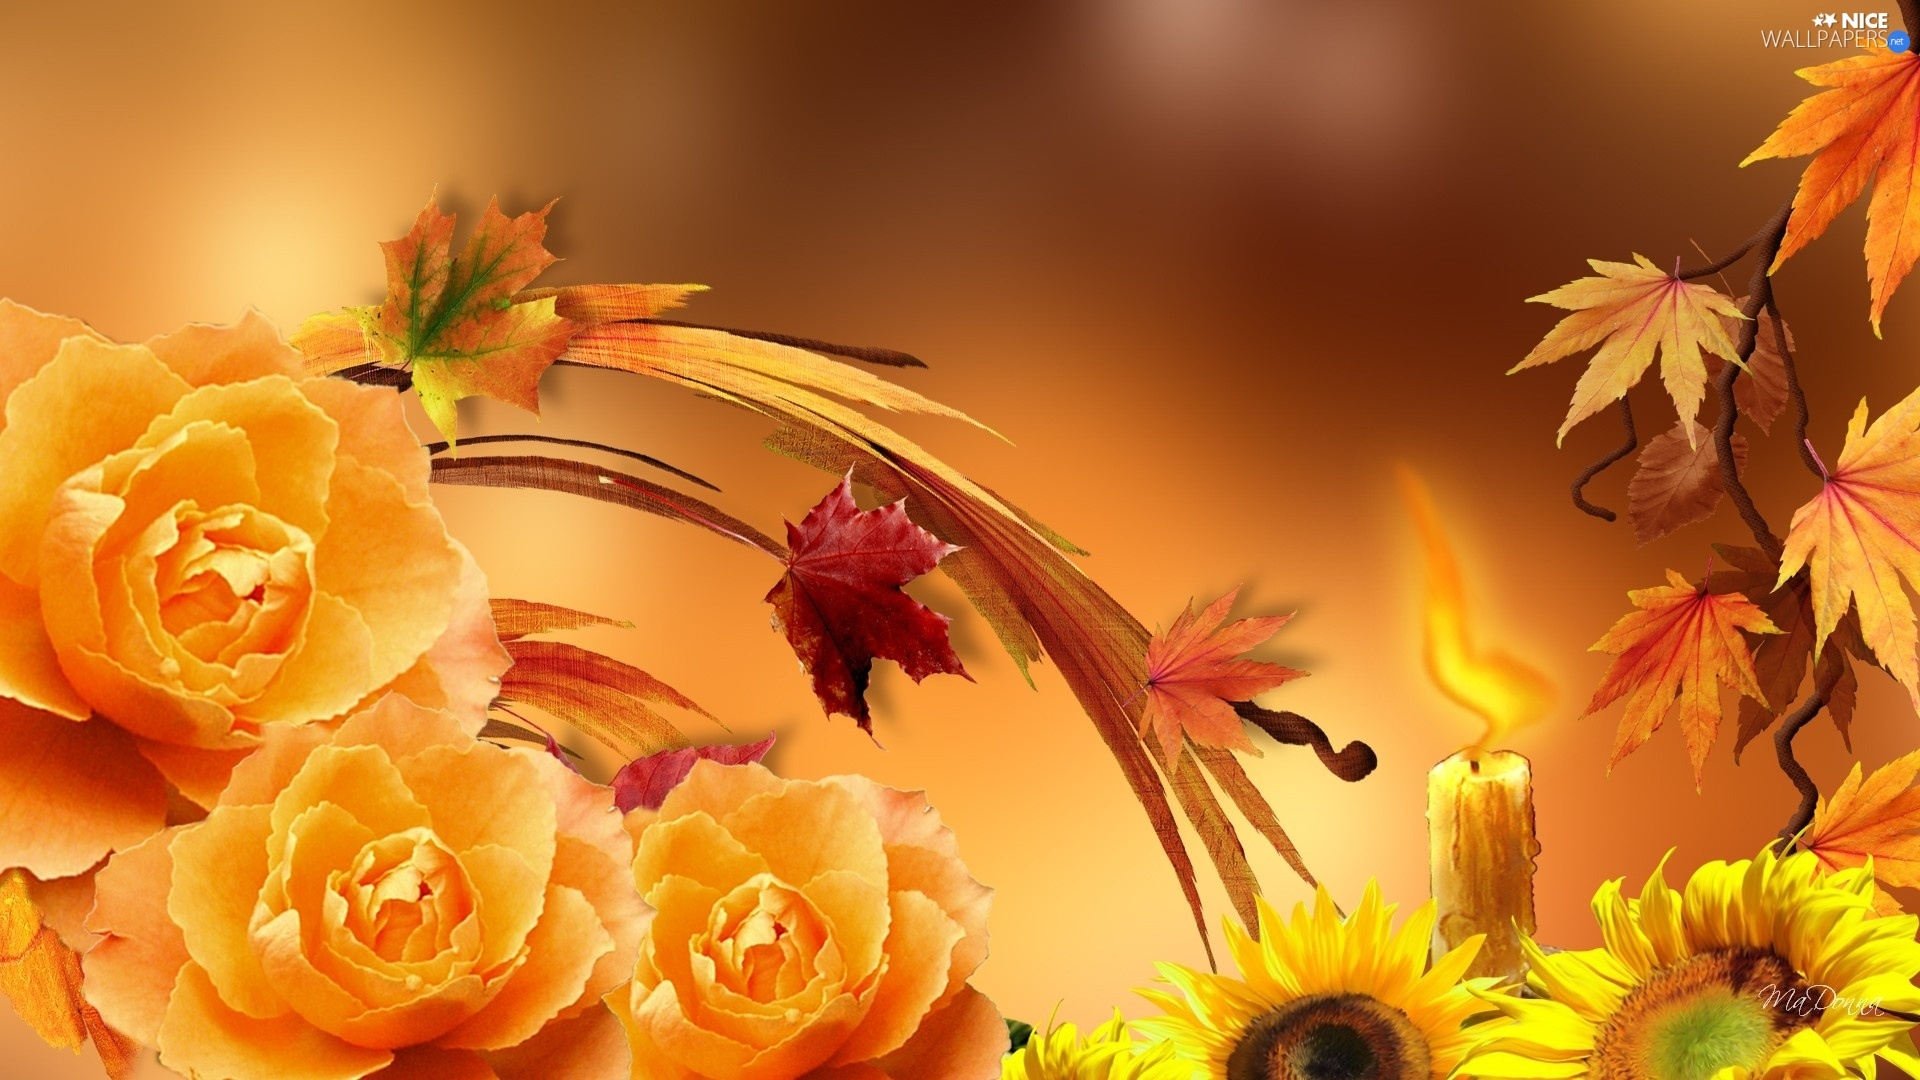 Fall Themed Computer Wallpaper Autumn Nice Sunflowers Leaf Roses Nice Wallpapers